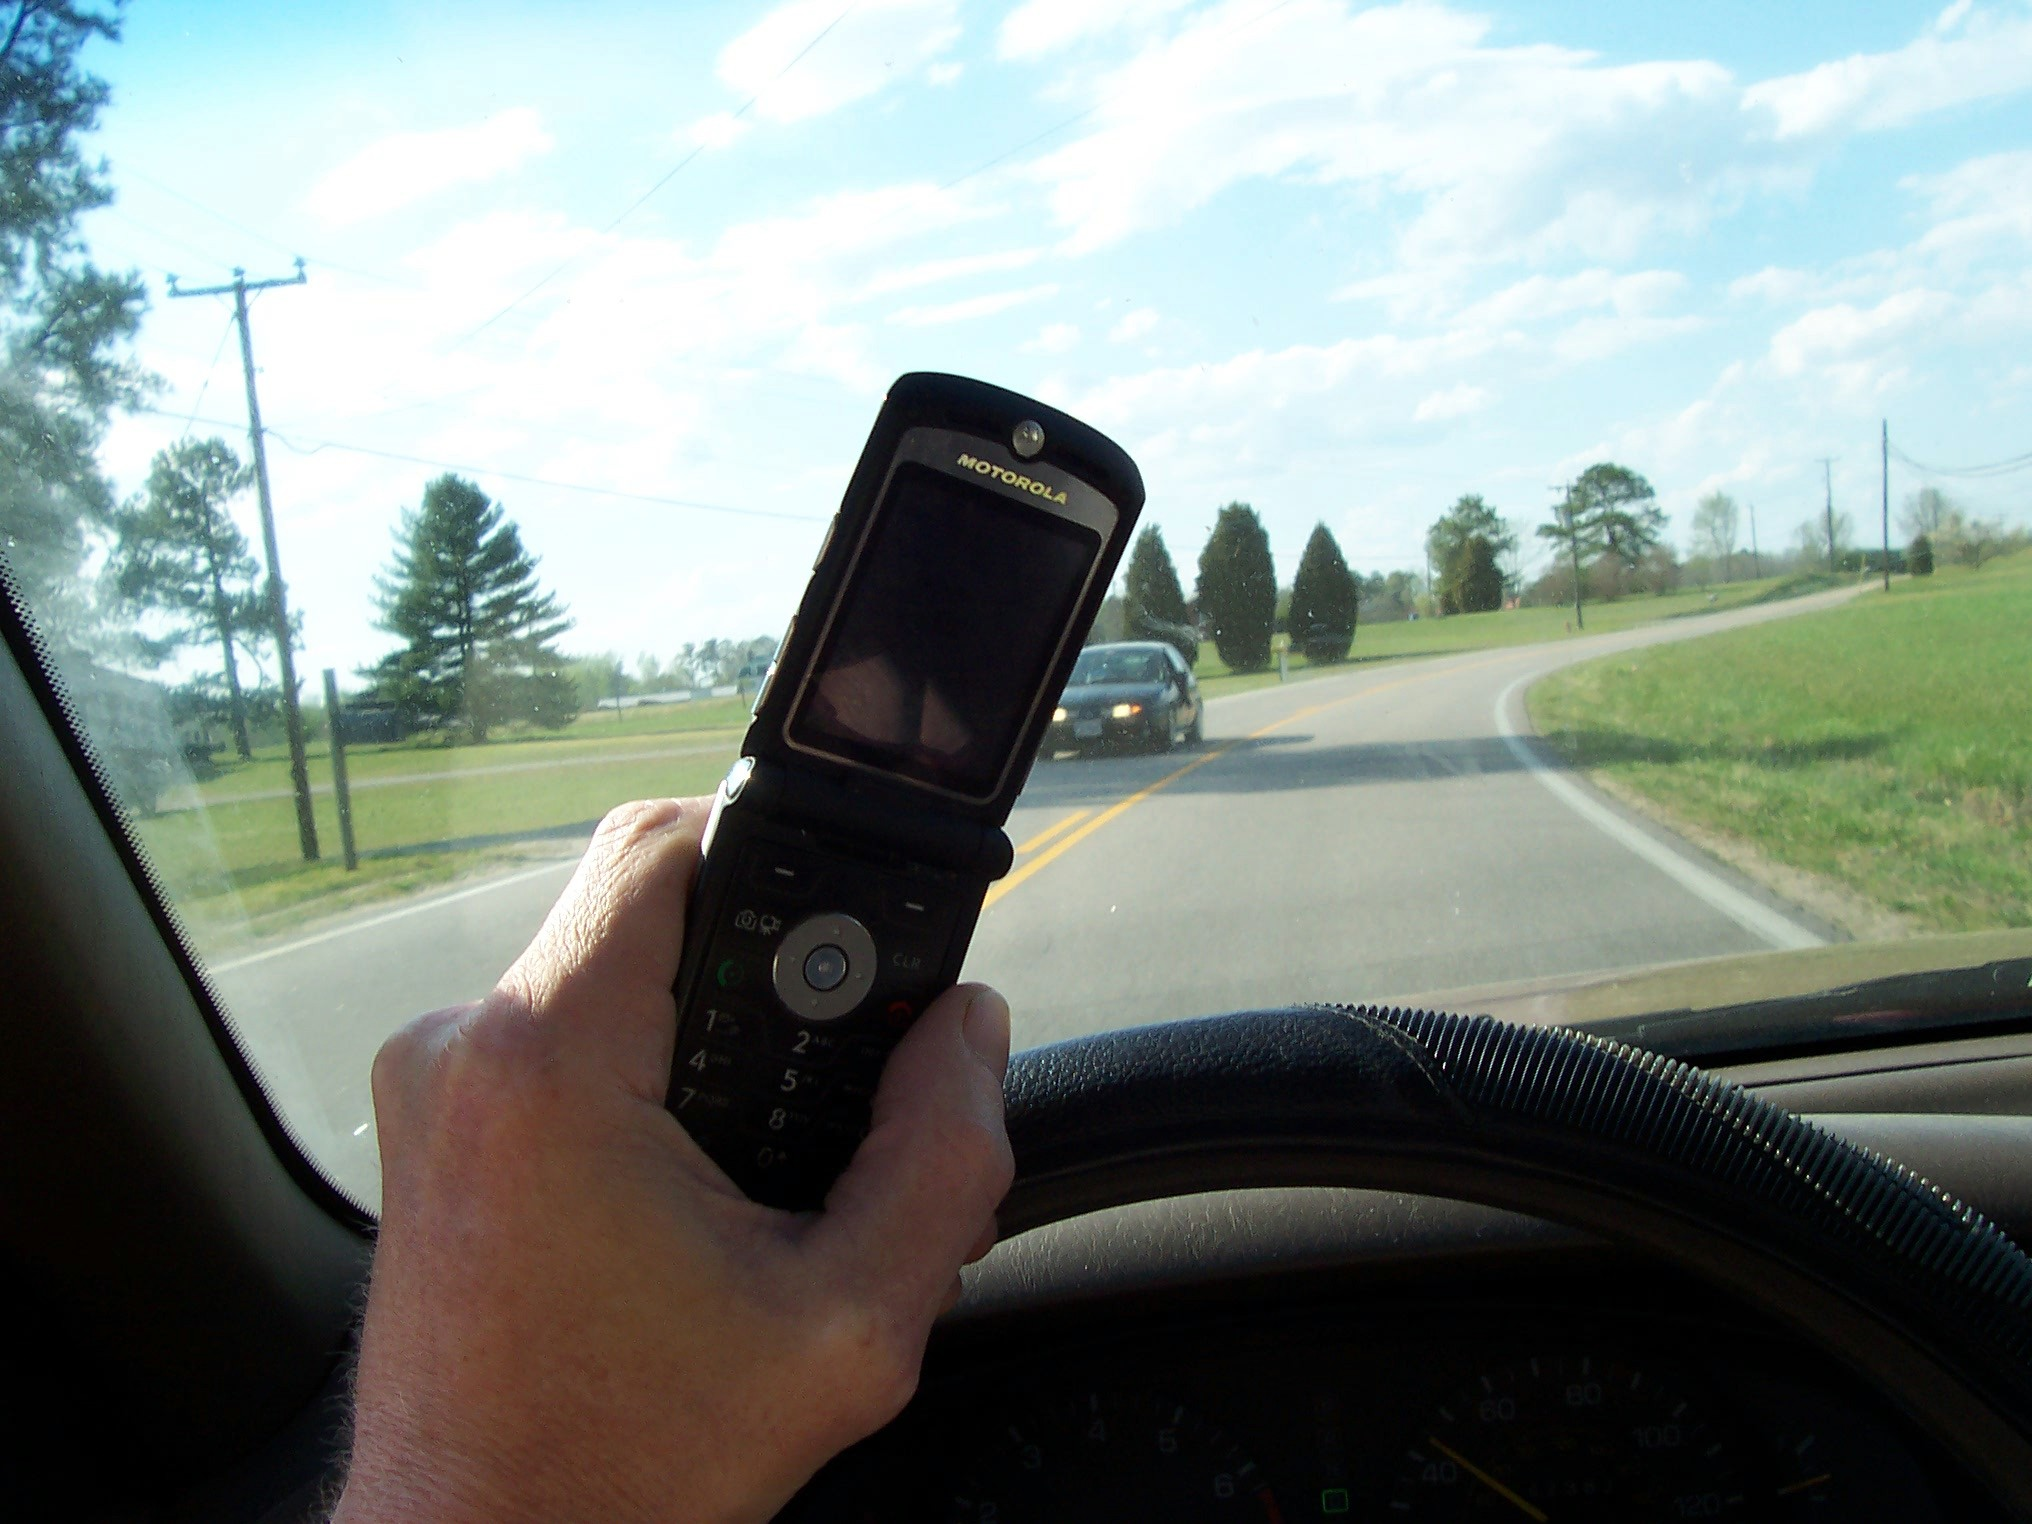 File:Cell phone use while driving.jpg